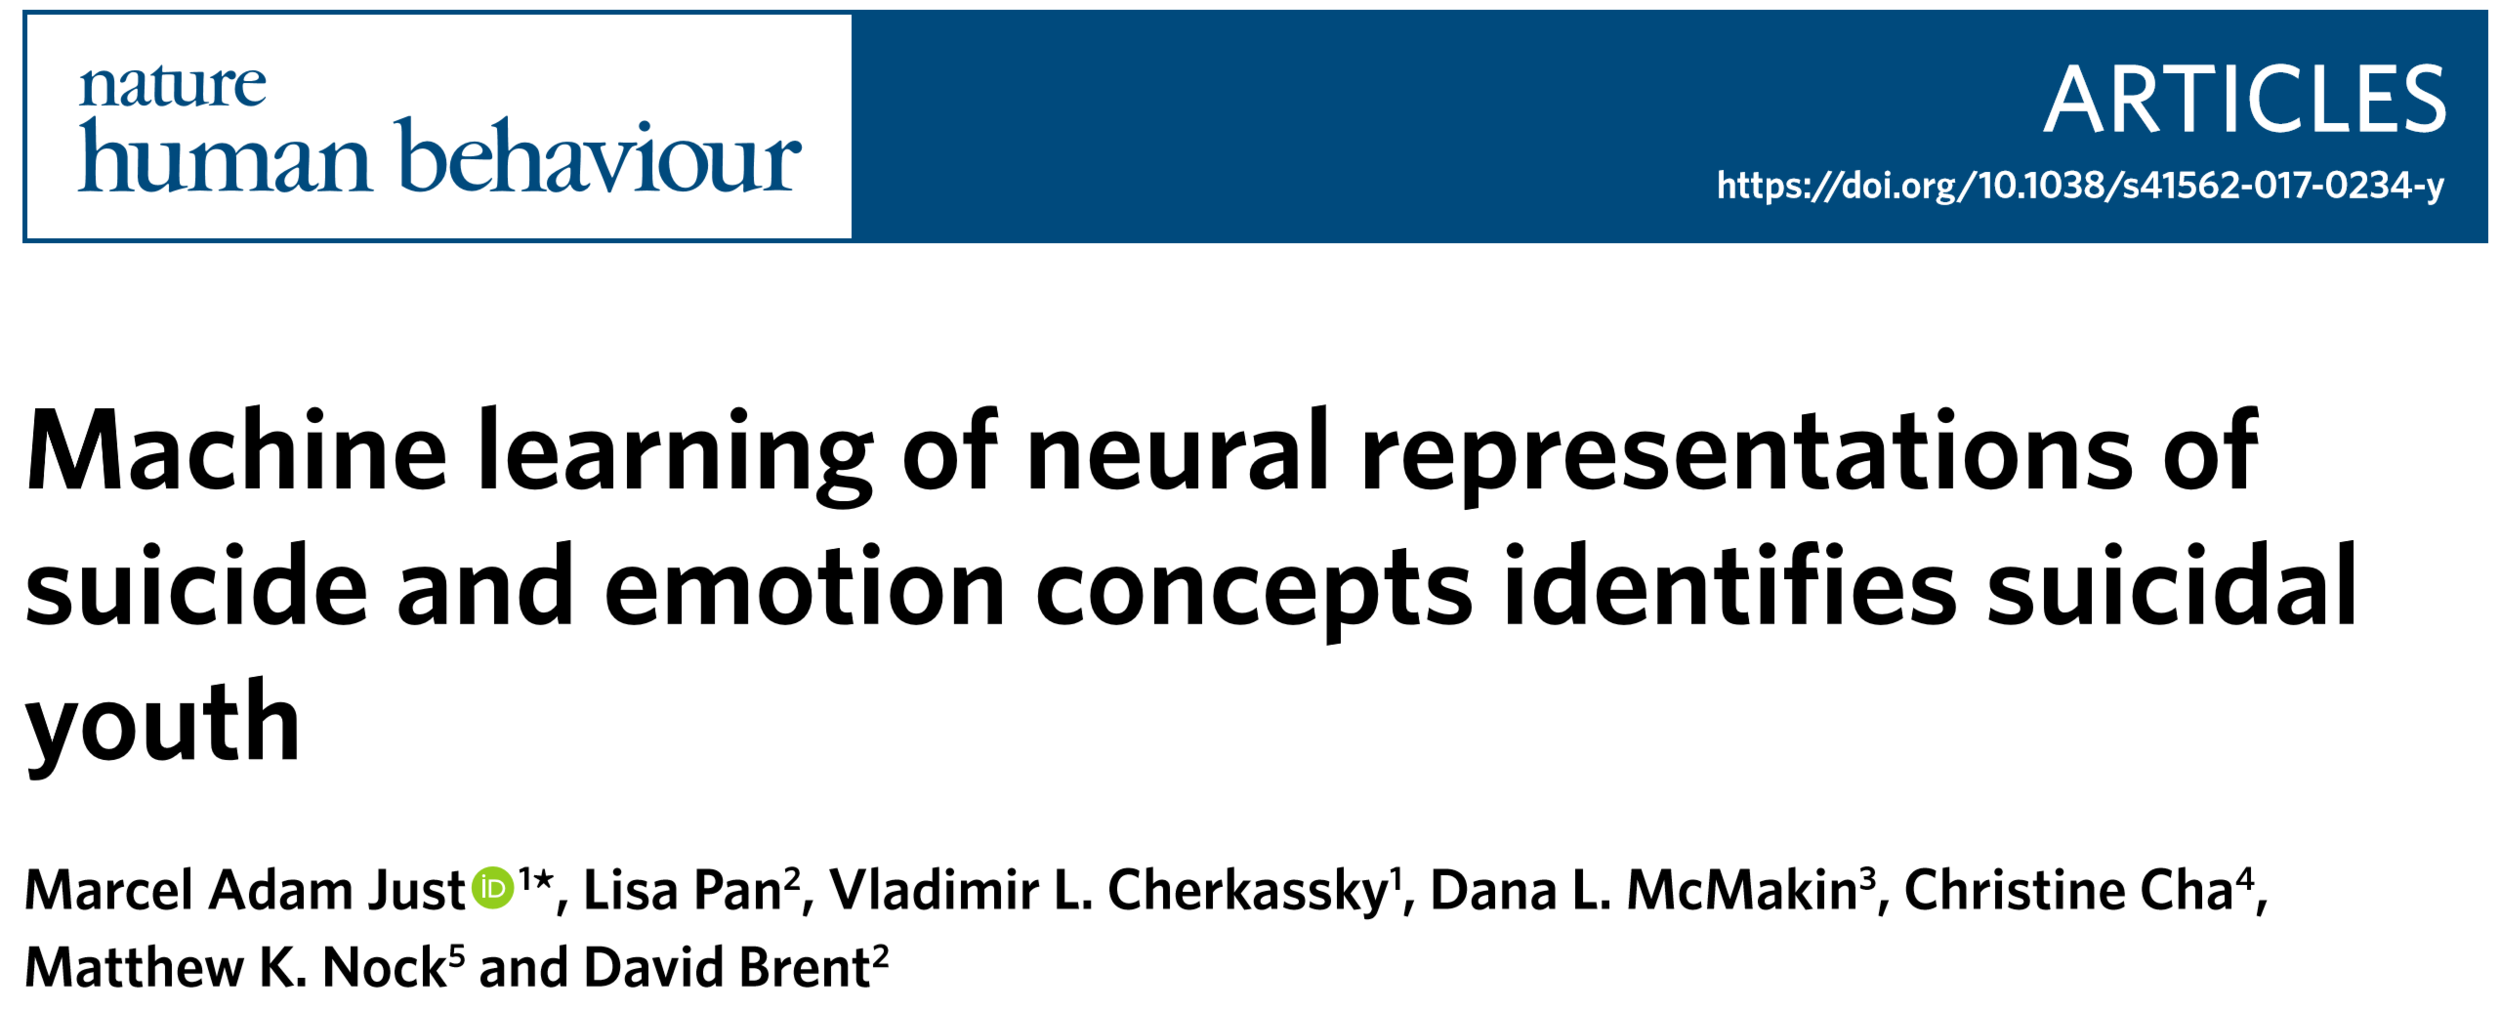 Machine learning of neural representations of suicide and emotion concepts identifies suicidal youth